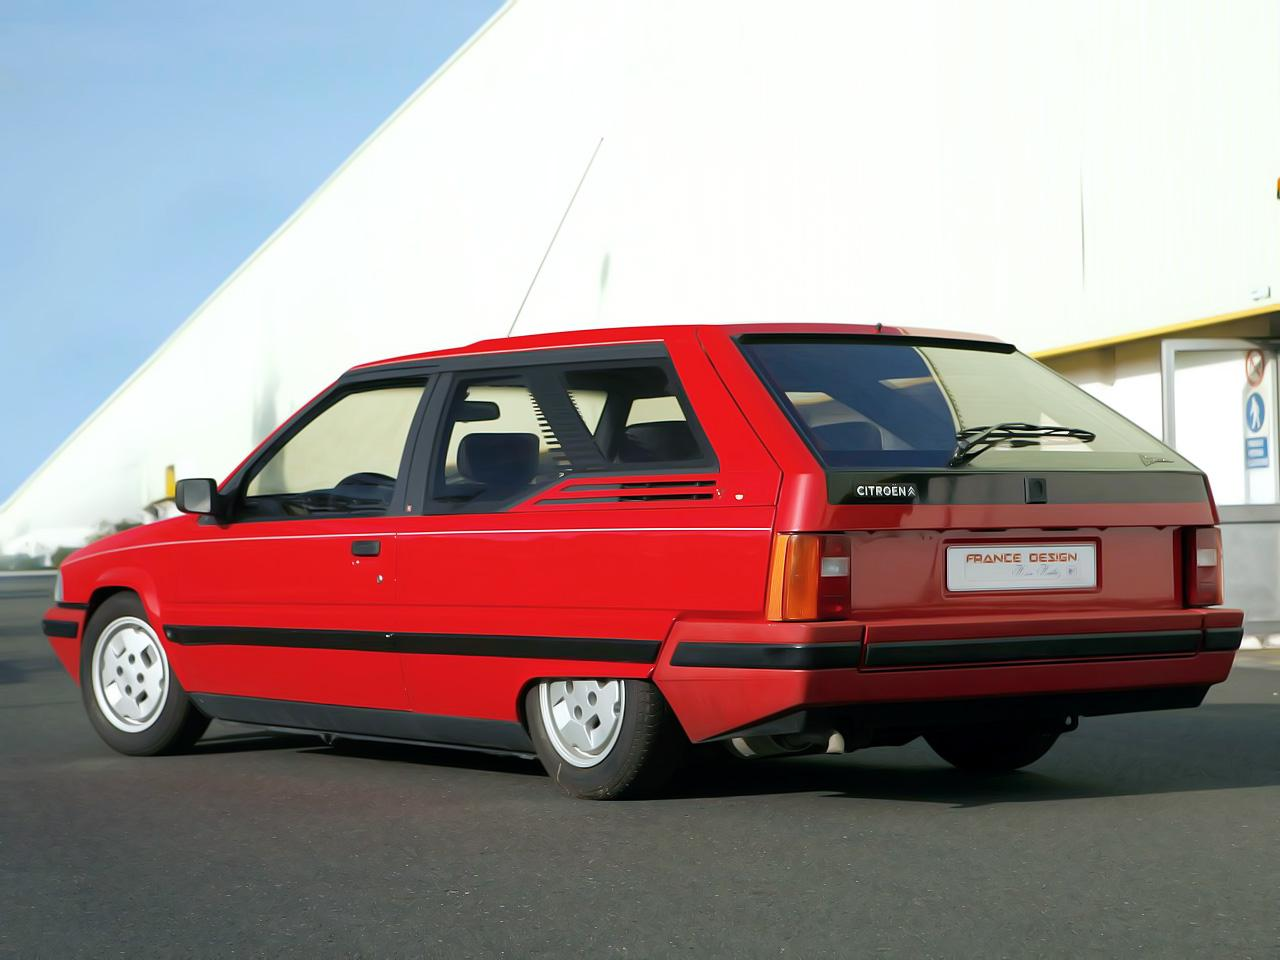 Dyana (Coupé-Station-wagon BX από την Heuliez)